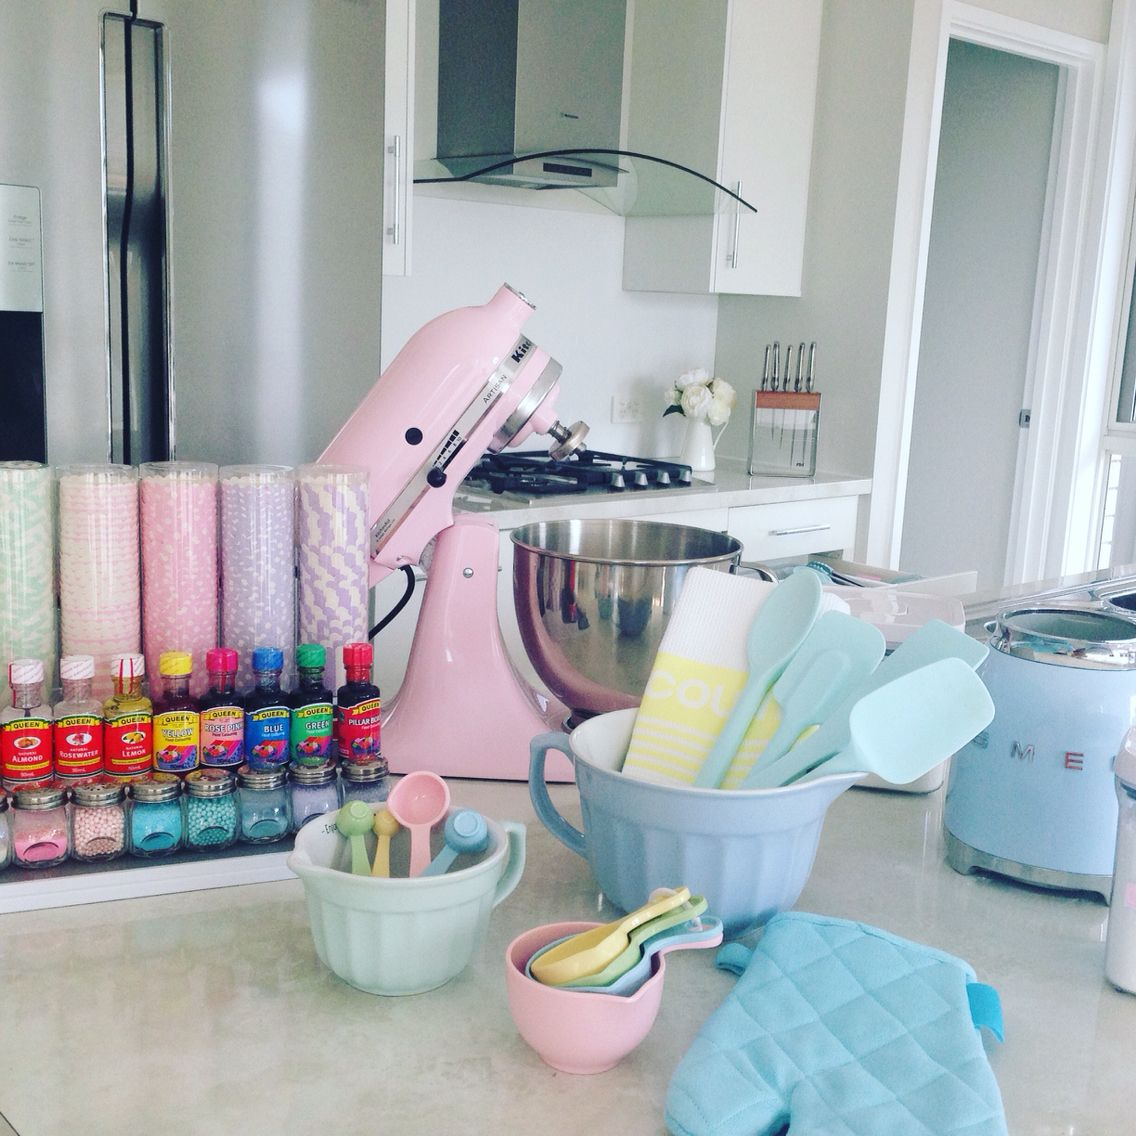 My pastel kitchen accessories, ready for baking | Pastel Love ...